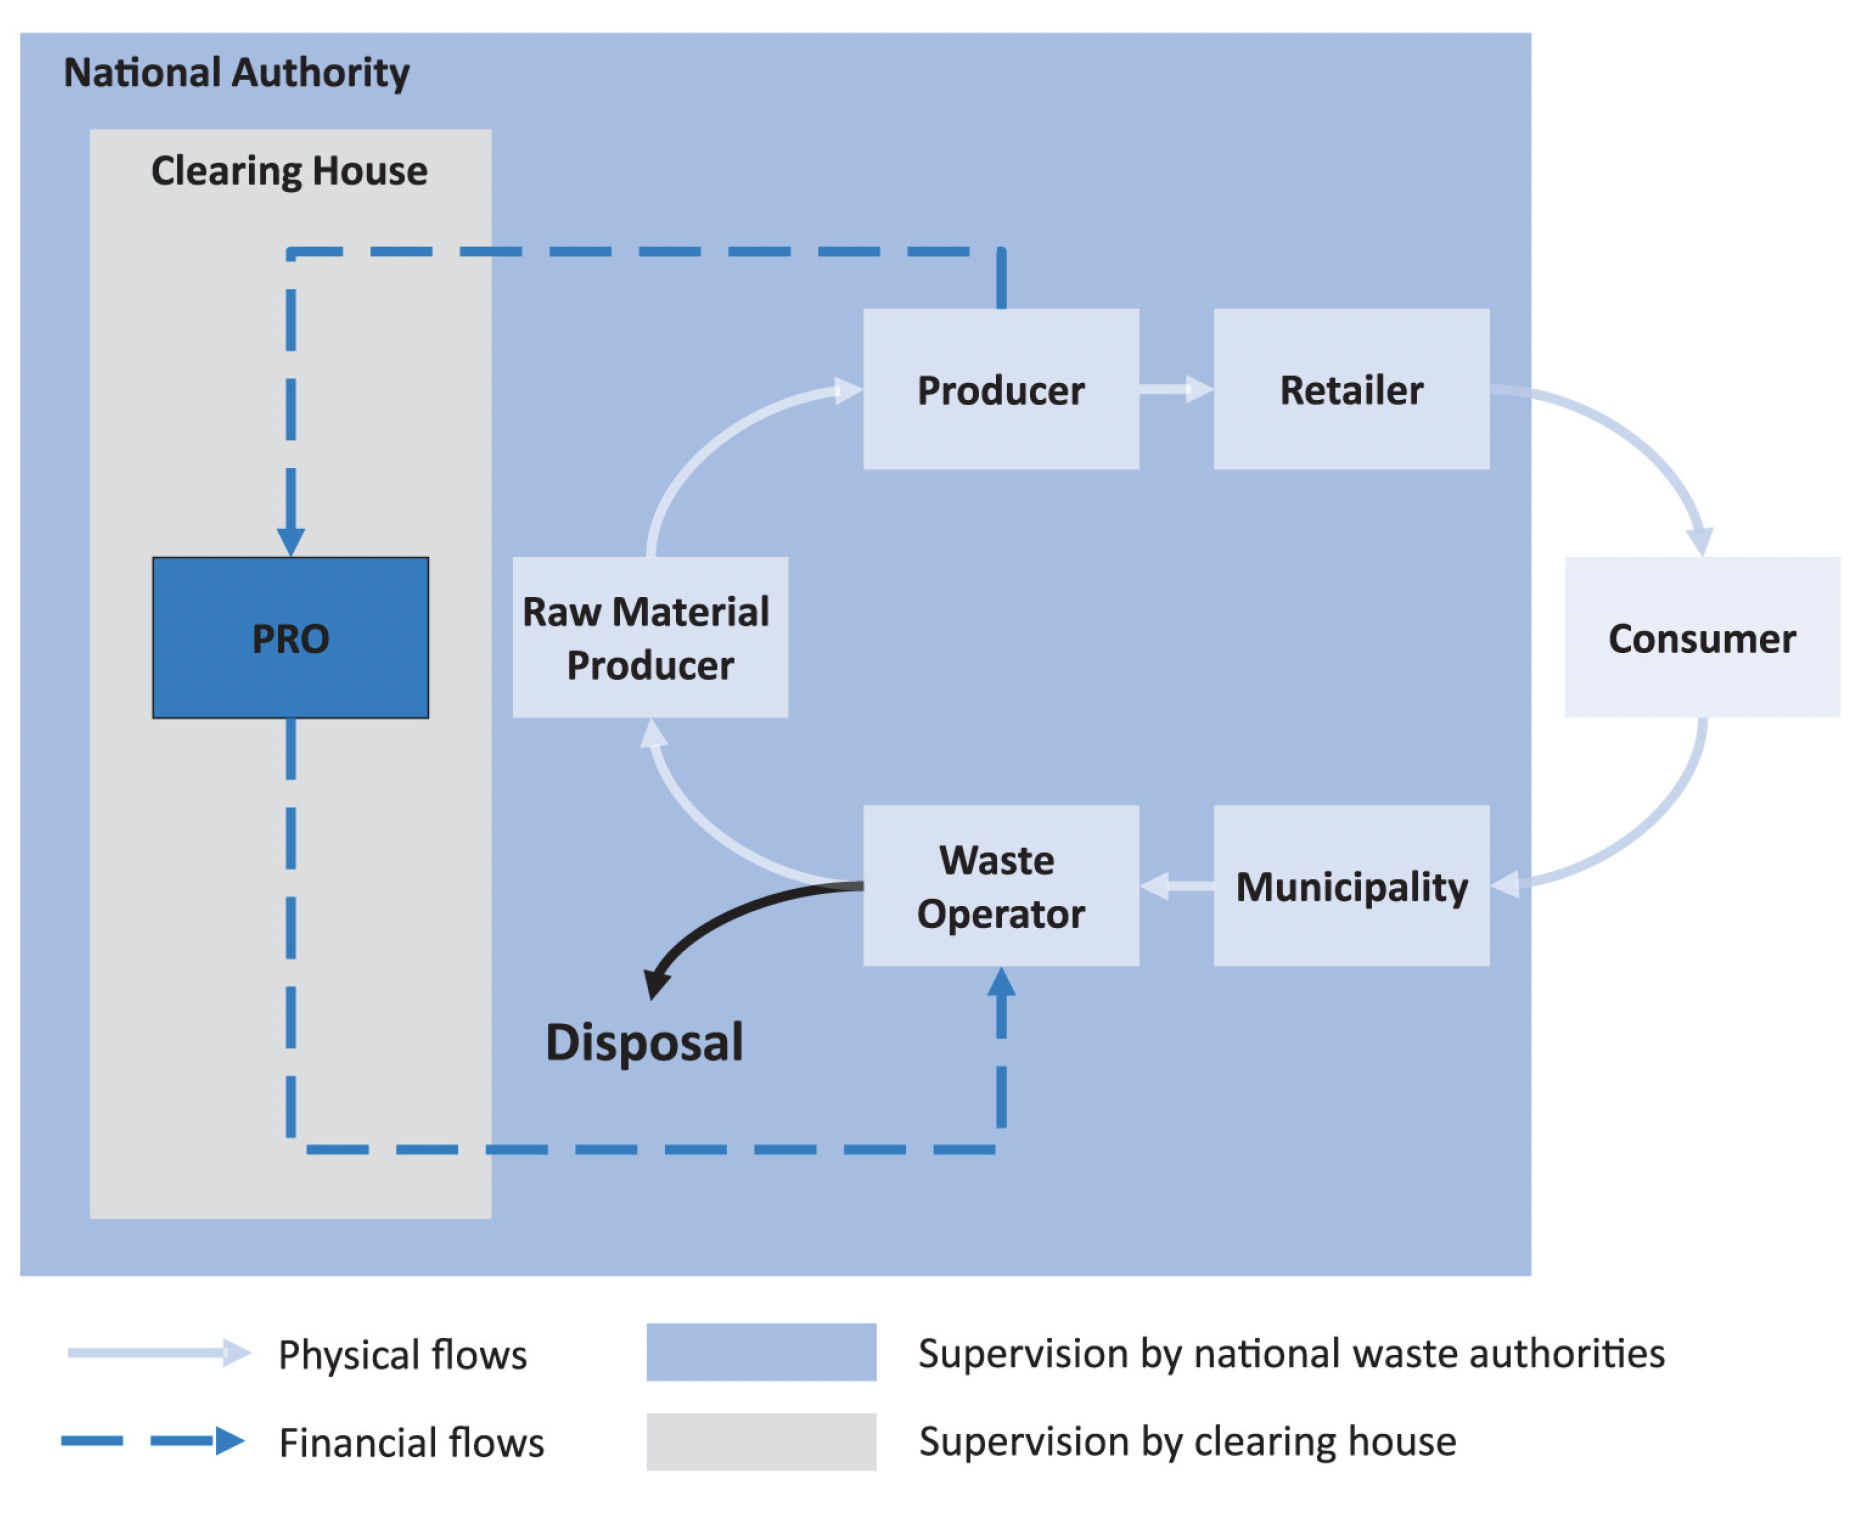 National Authority/Government sphere of control for EPR implementation